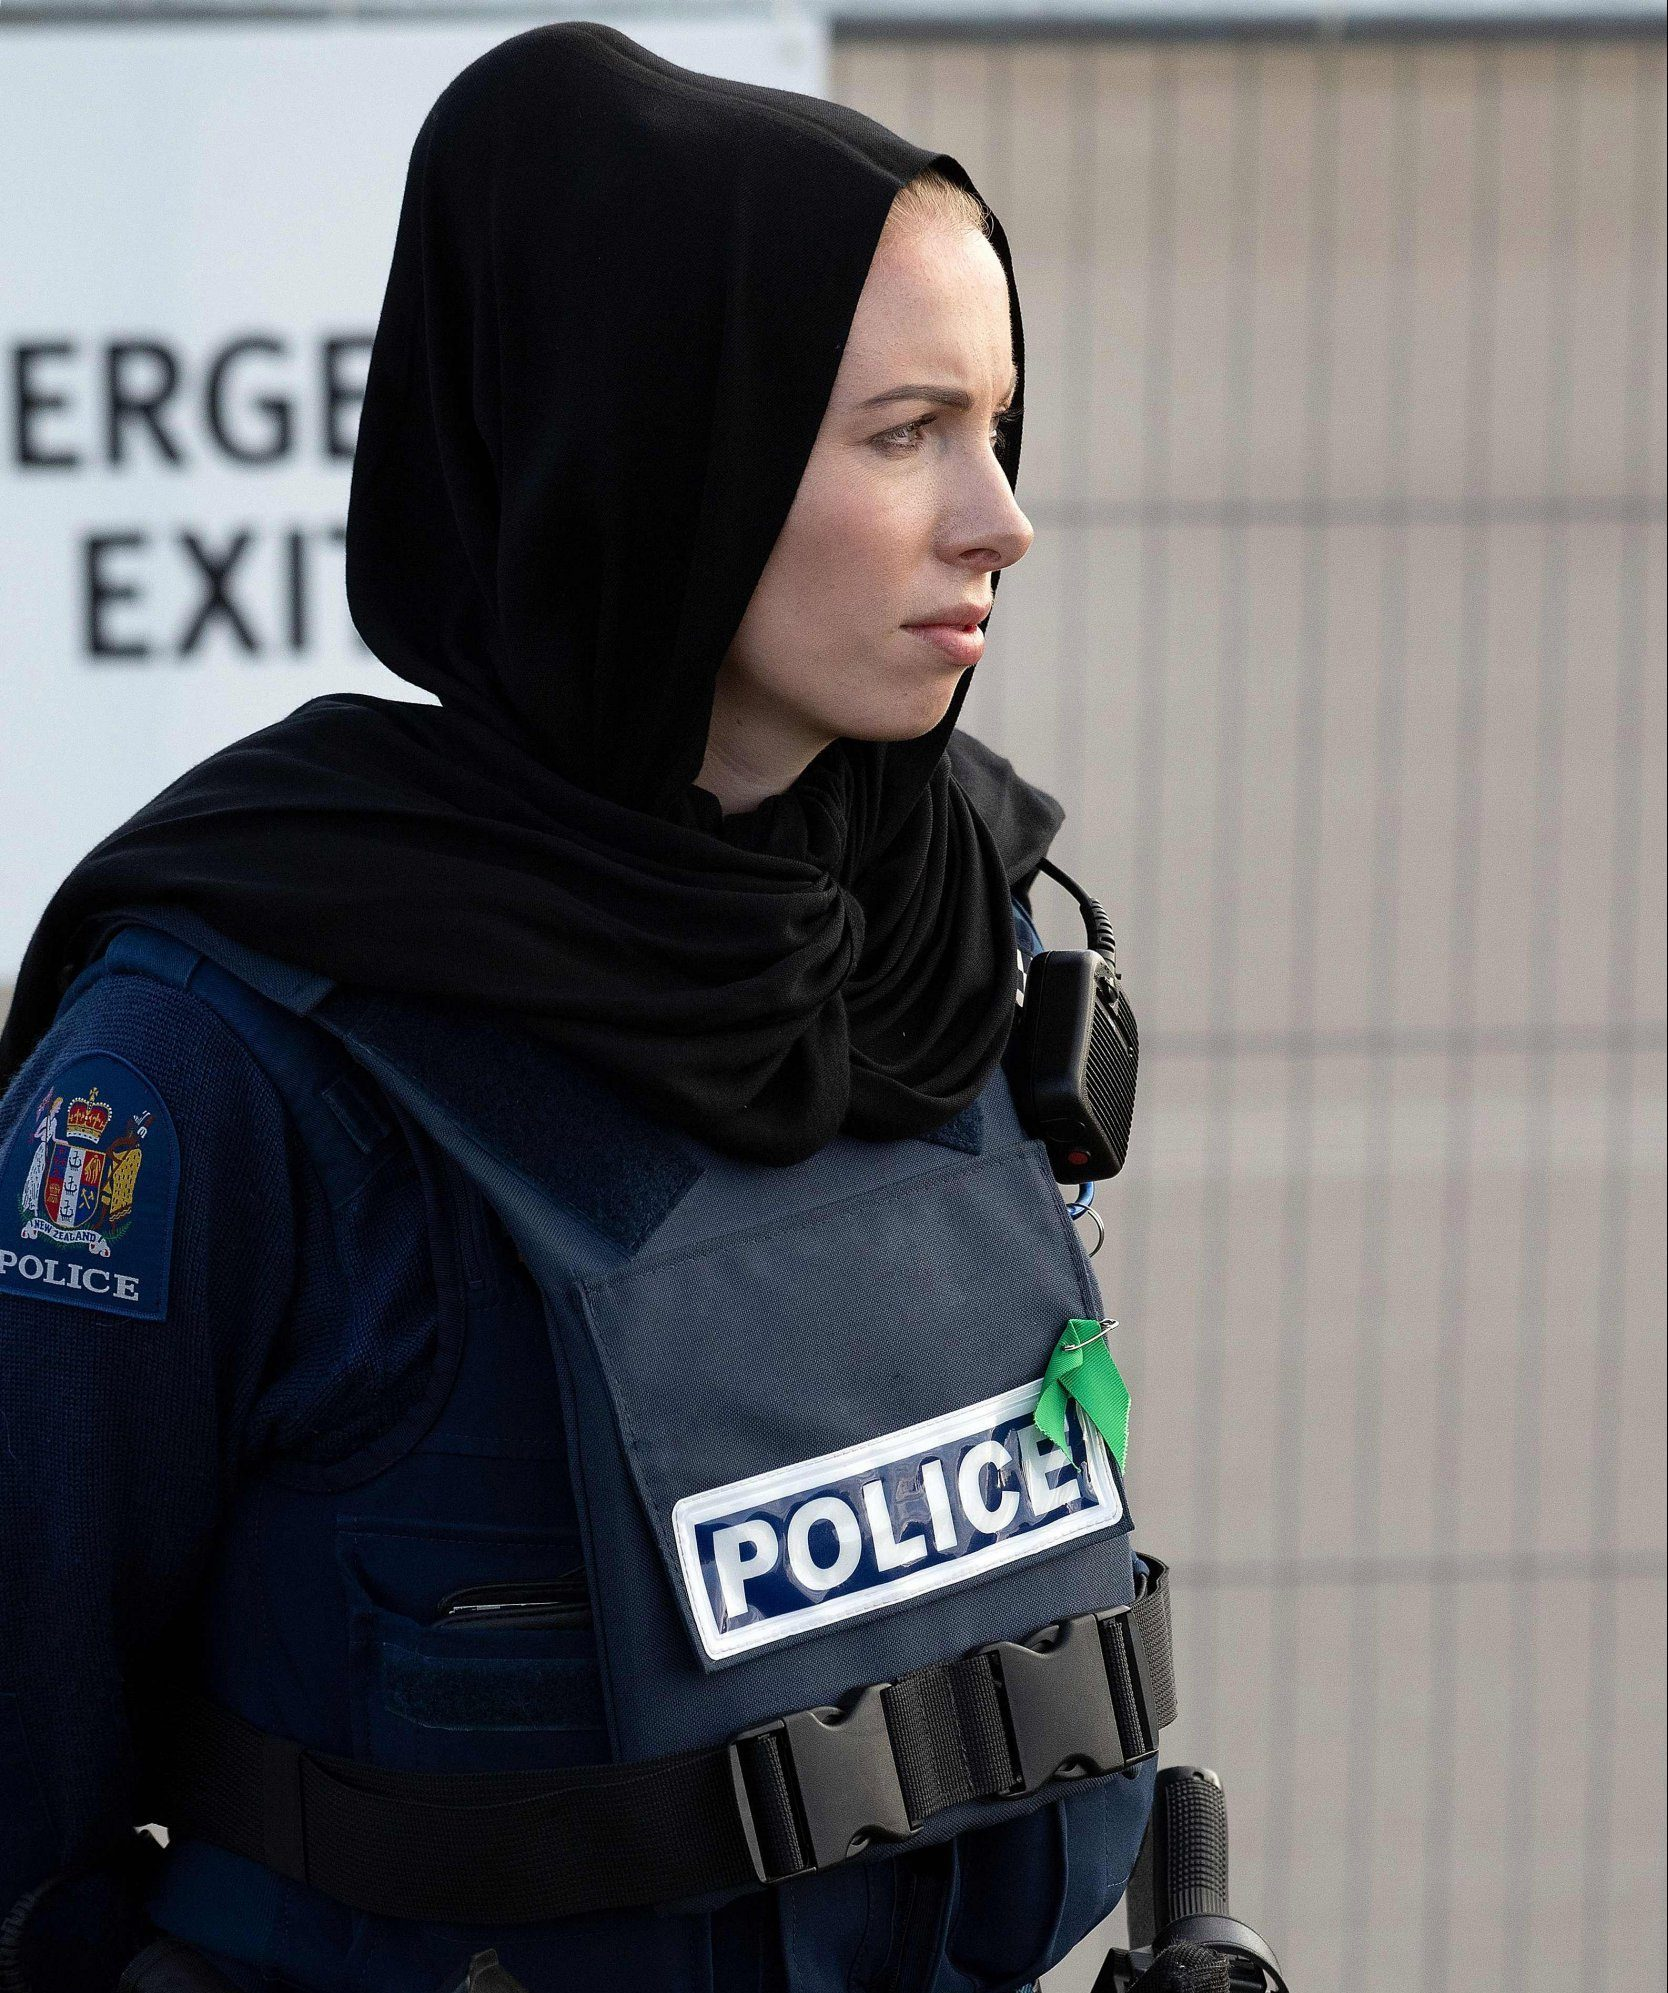 A police officer wearing a head scarf stands guard during a funeral ceremony at the Memorial Park in Christchurch on March 22, 2019. - The Muslim call to prayer rang out across New Zealand on Friday followed by two minutes of nationwide silence to mark a week since a white supremacist gunned down 50 people at two mosques in the city of Christchurch. (Photo by Marty MELVILLE / AFP)MARTY MELVILLE/AFP/Getty Images